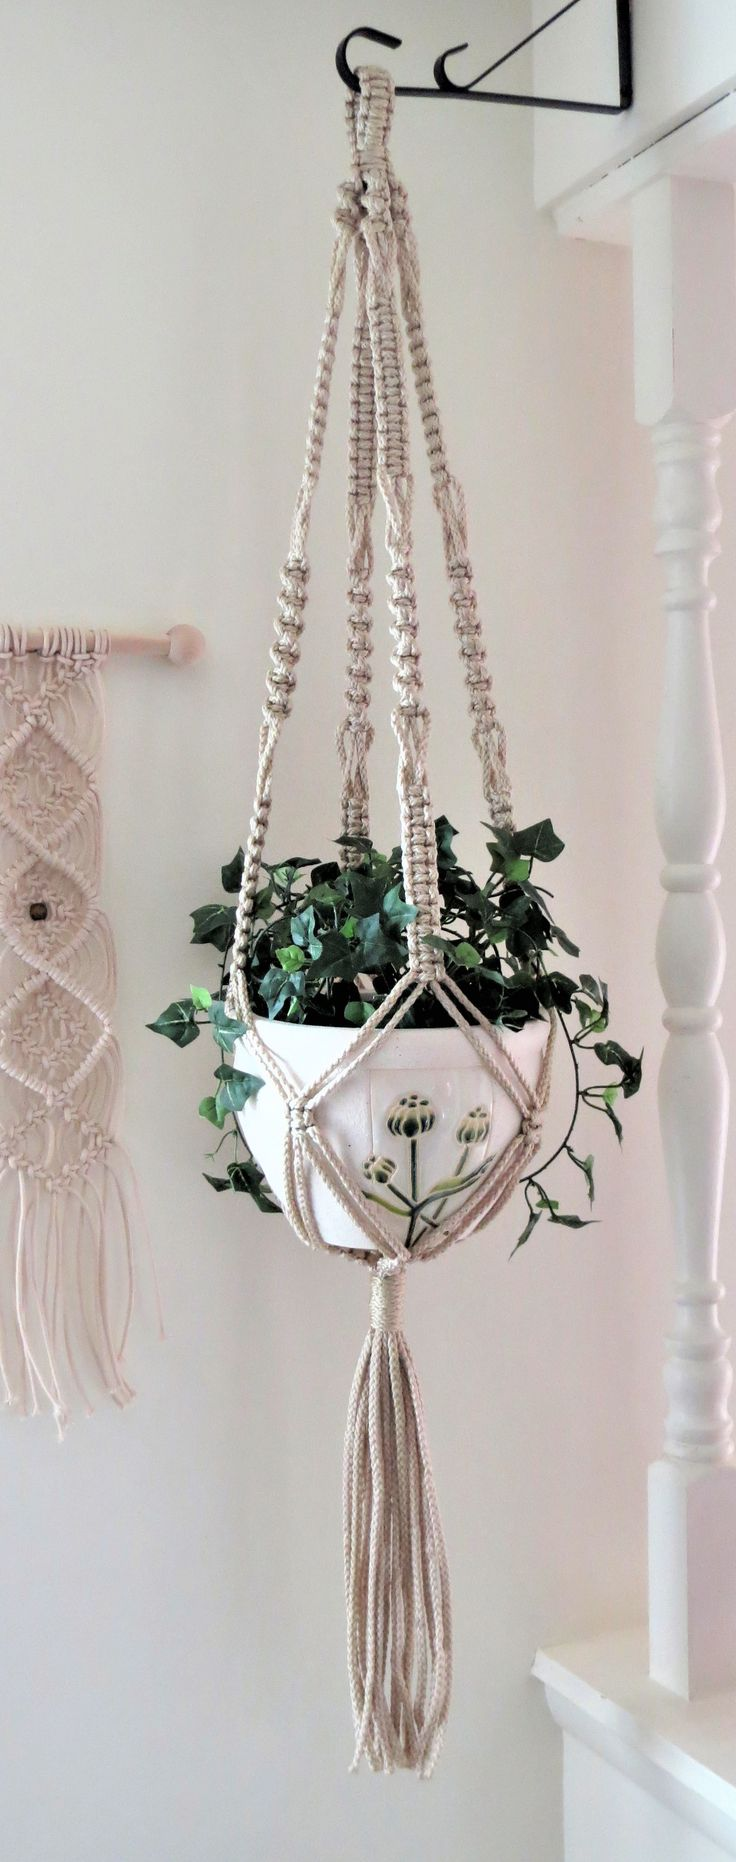 So pretty! Need to hang one of these in the house.